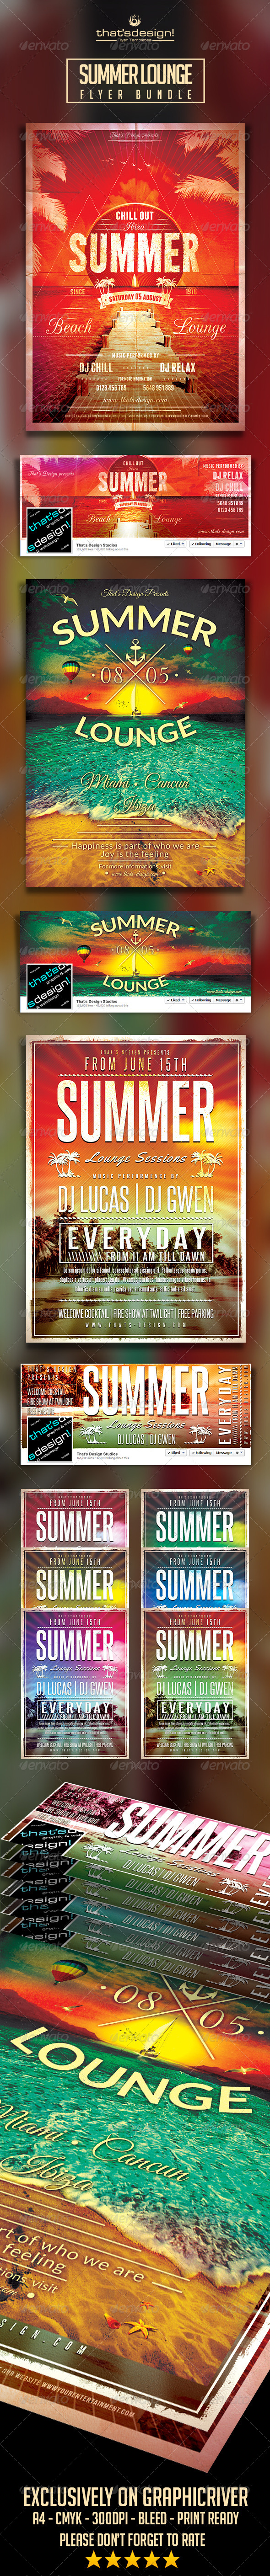 GraphicRiver Summer Lounge Flyer Bundle 8174928